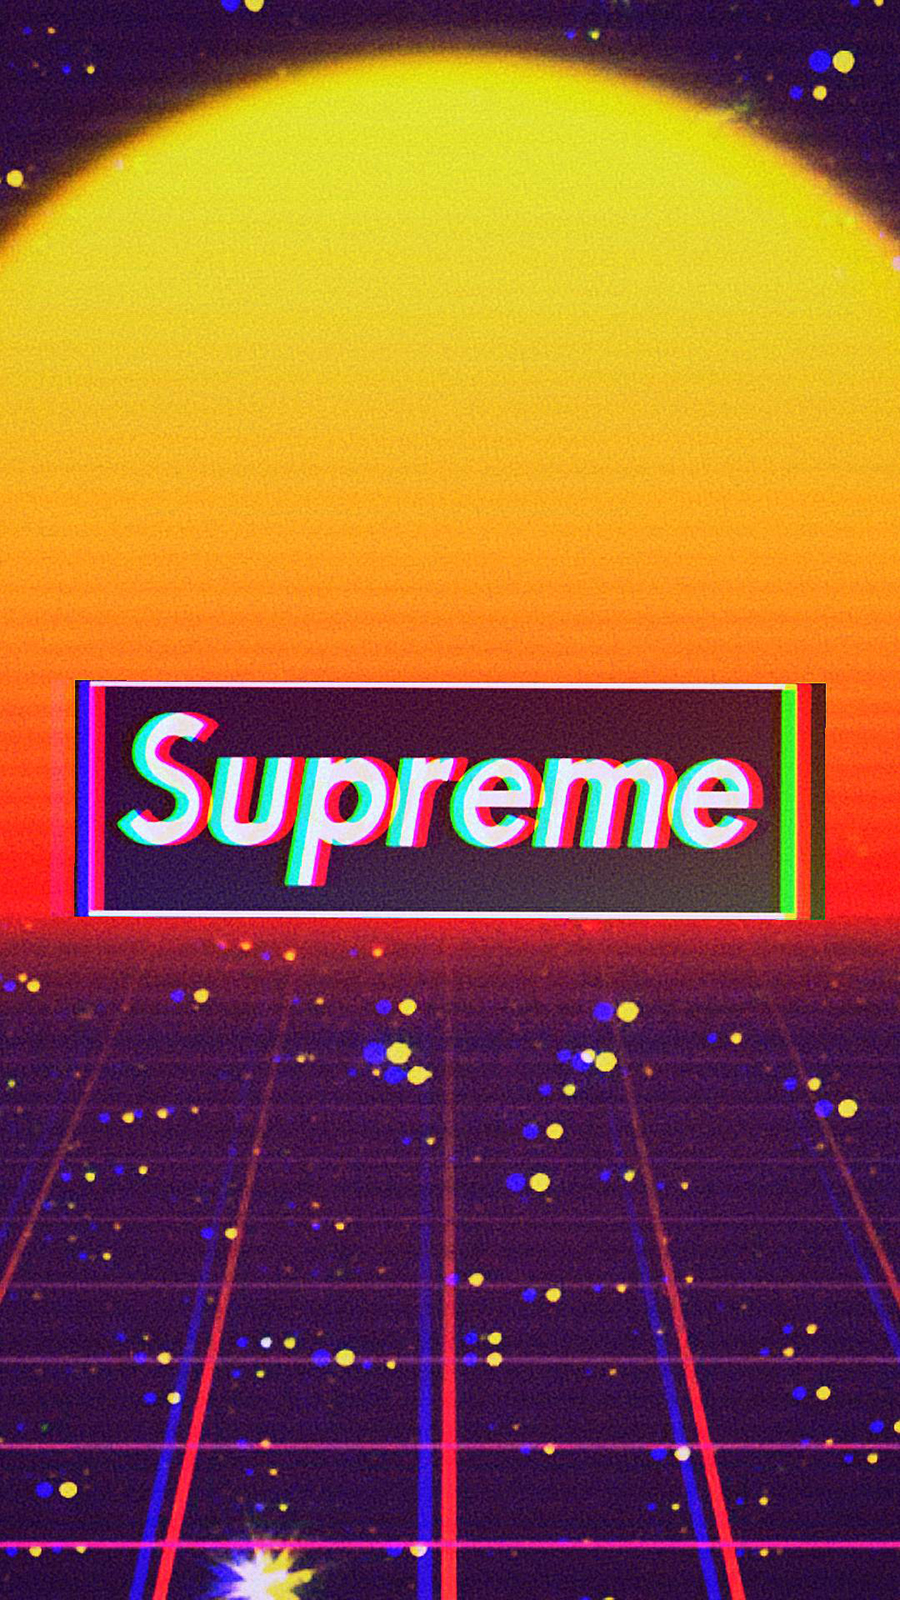 Retro Supreme Wallpapers Now Download For Your Device